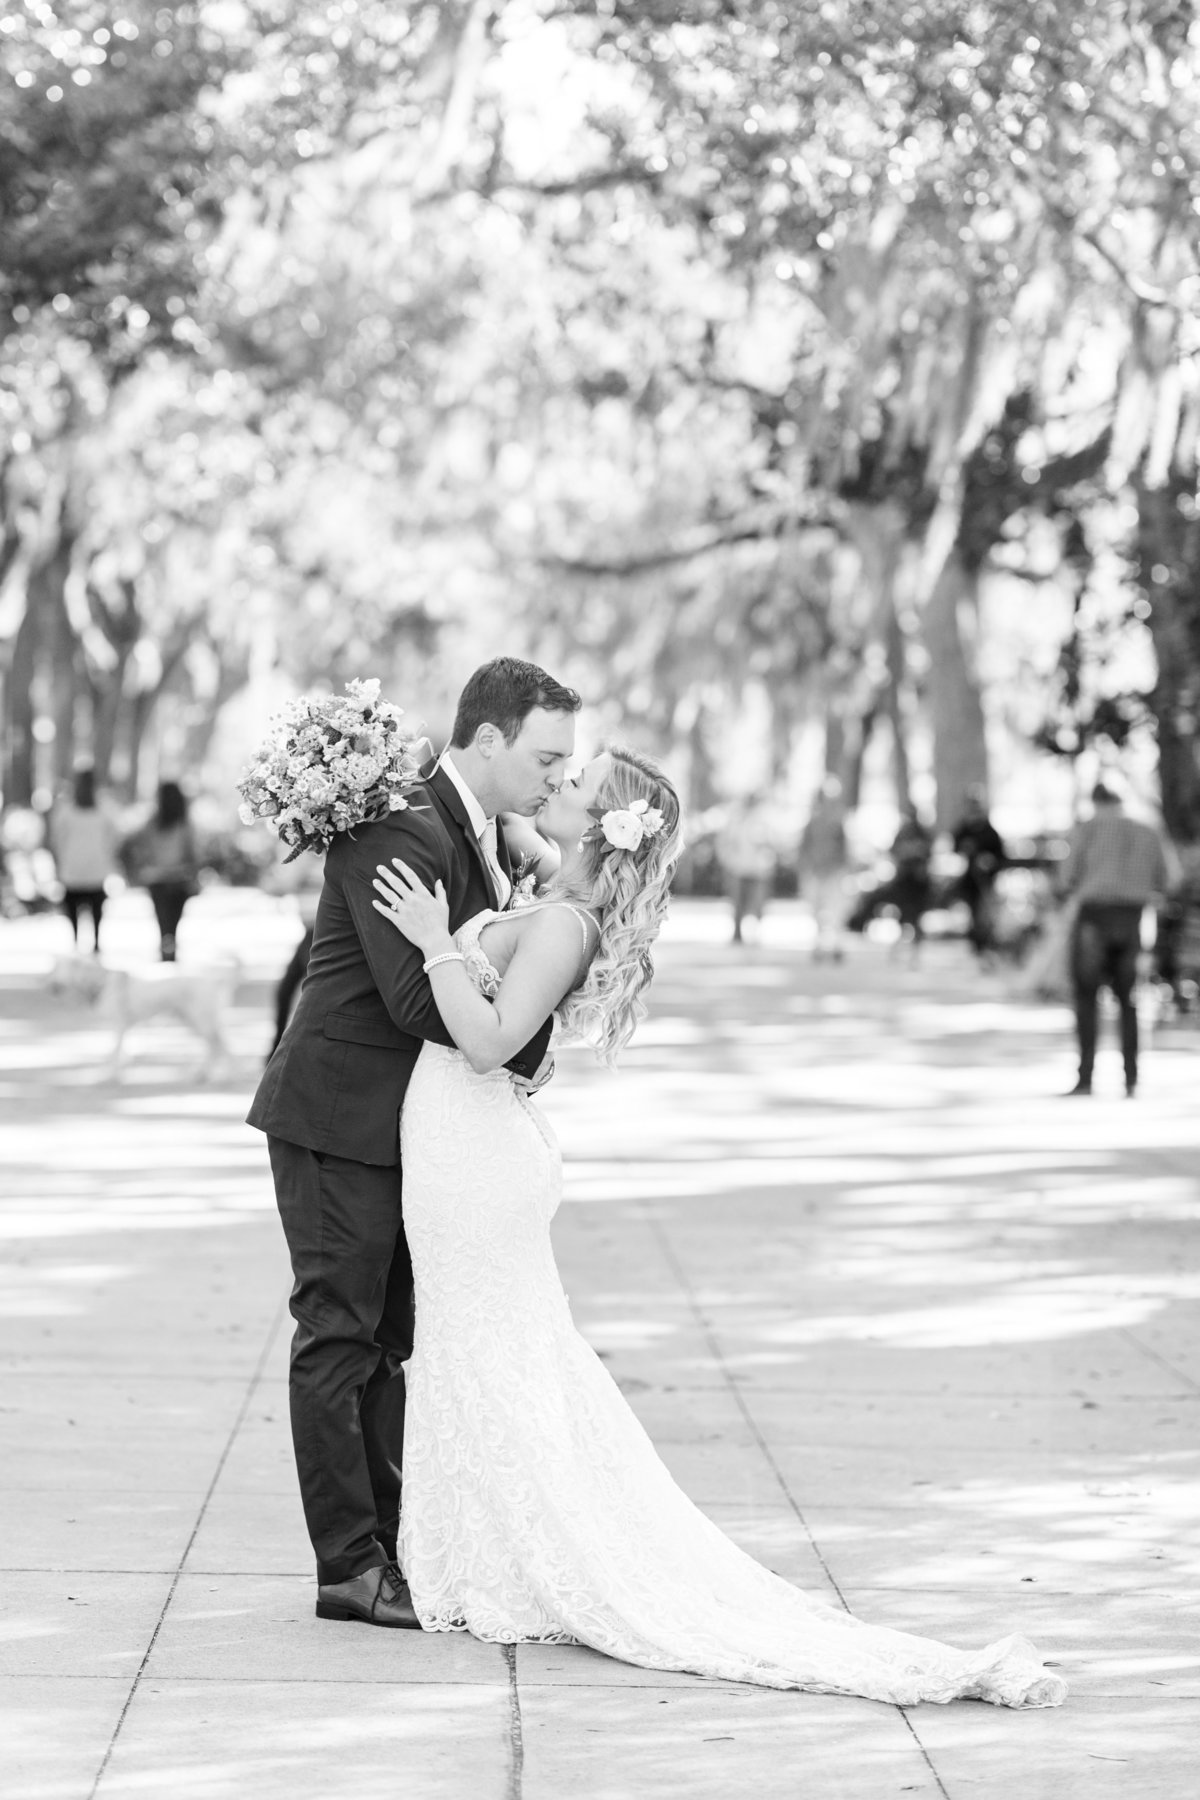 black and white image of bride and groom embracing and kissing